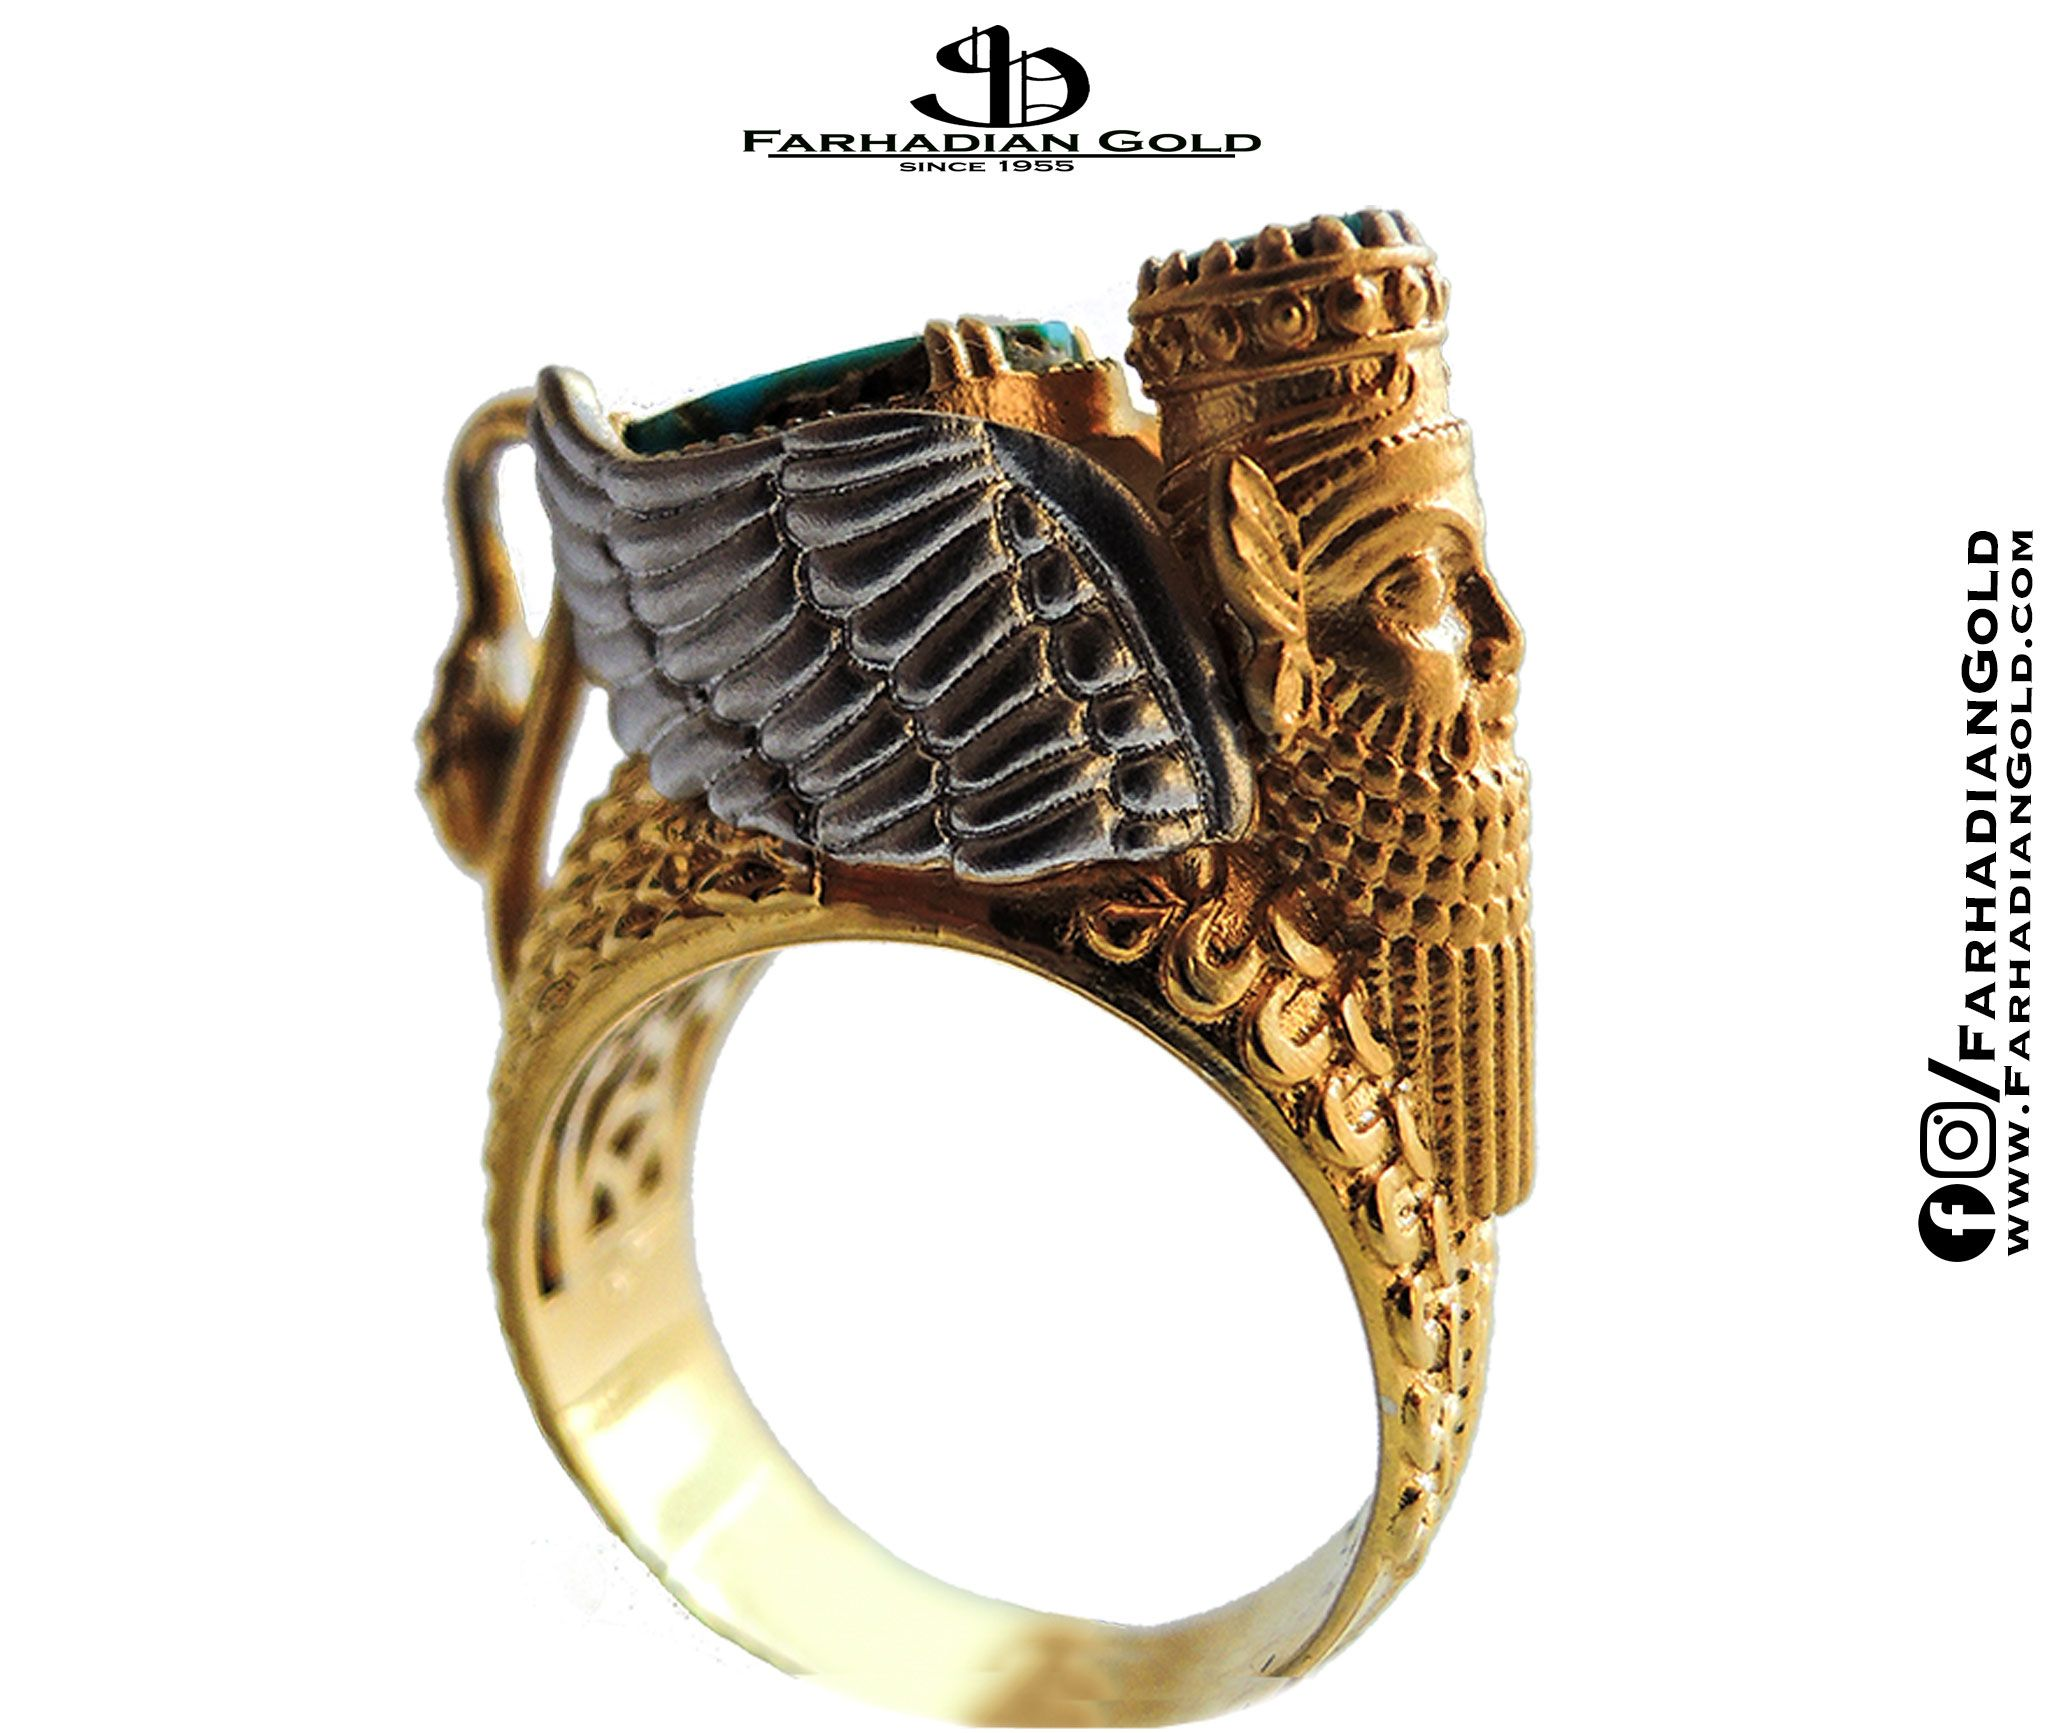 Farhadiangold ring pinterest ring designs jewelry art and ring